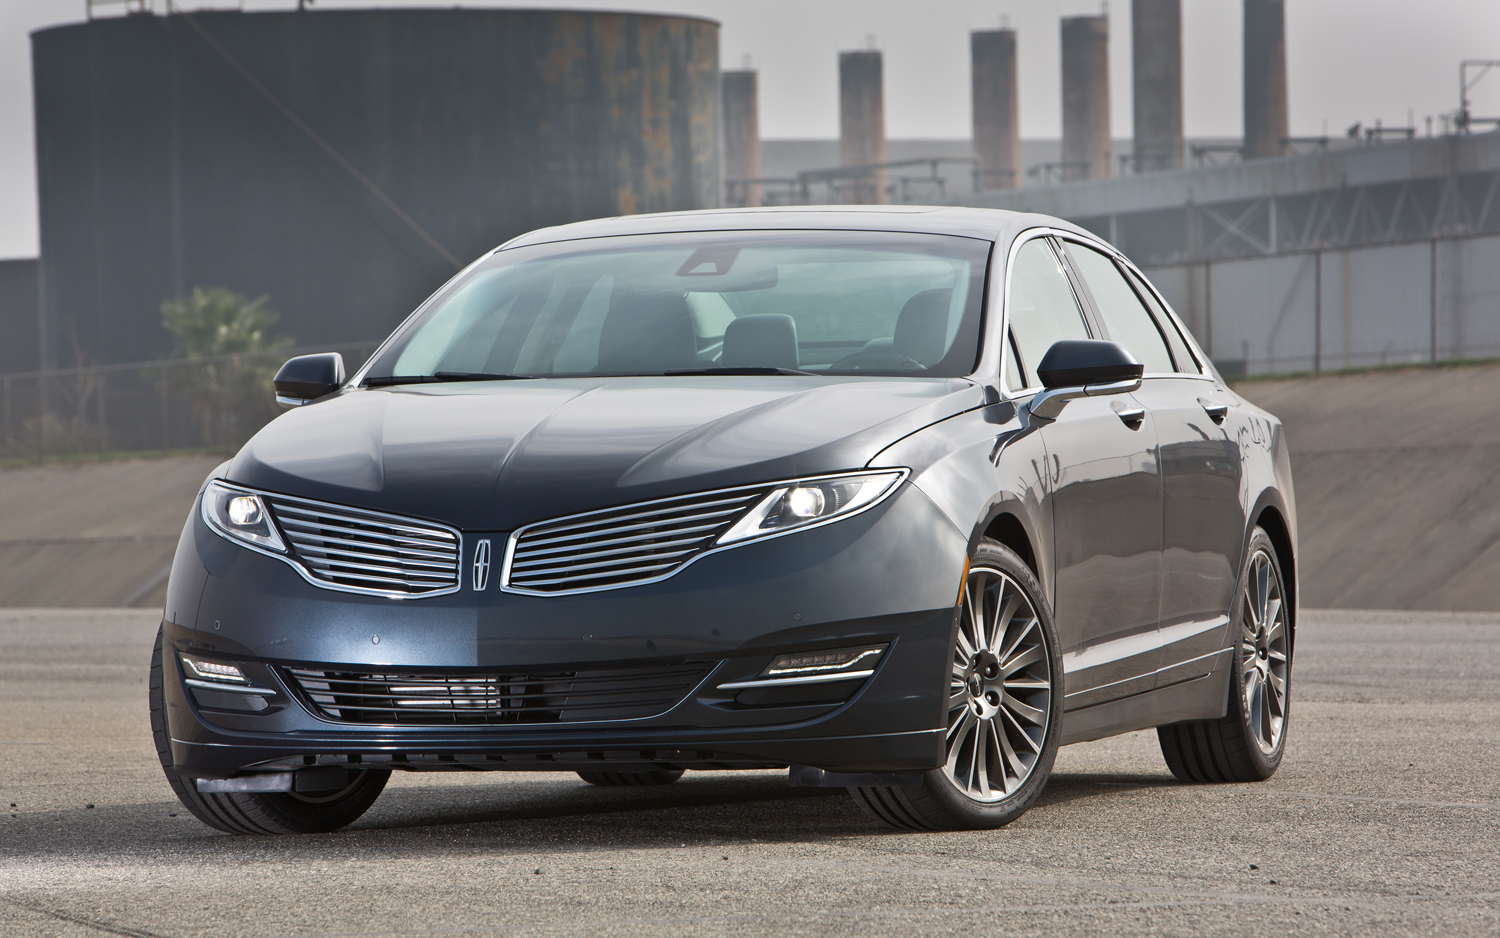 2013 Lincoln Mkz #9